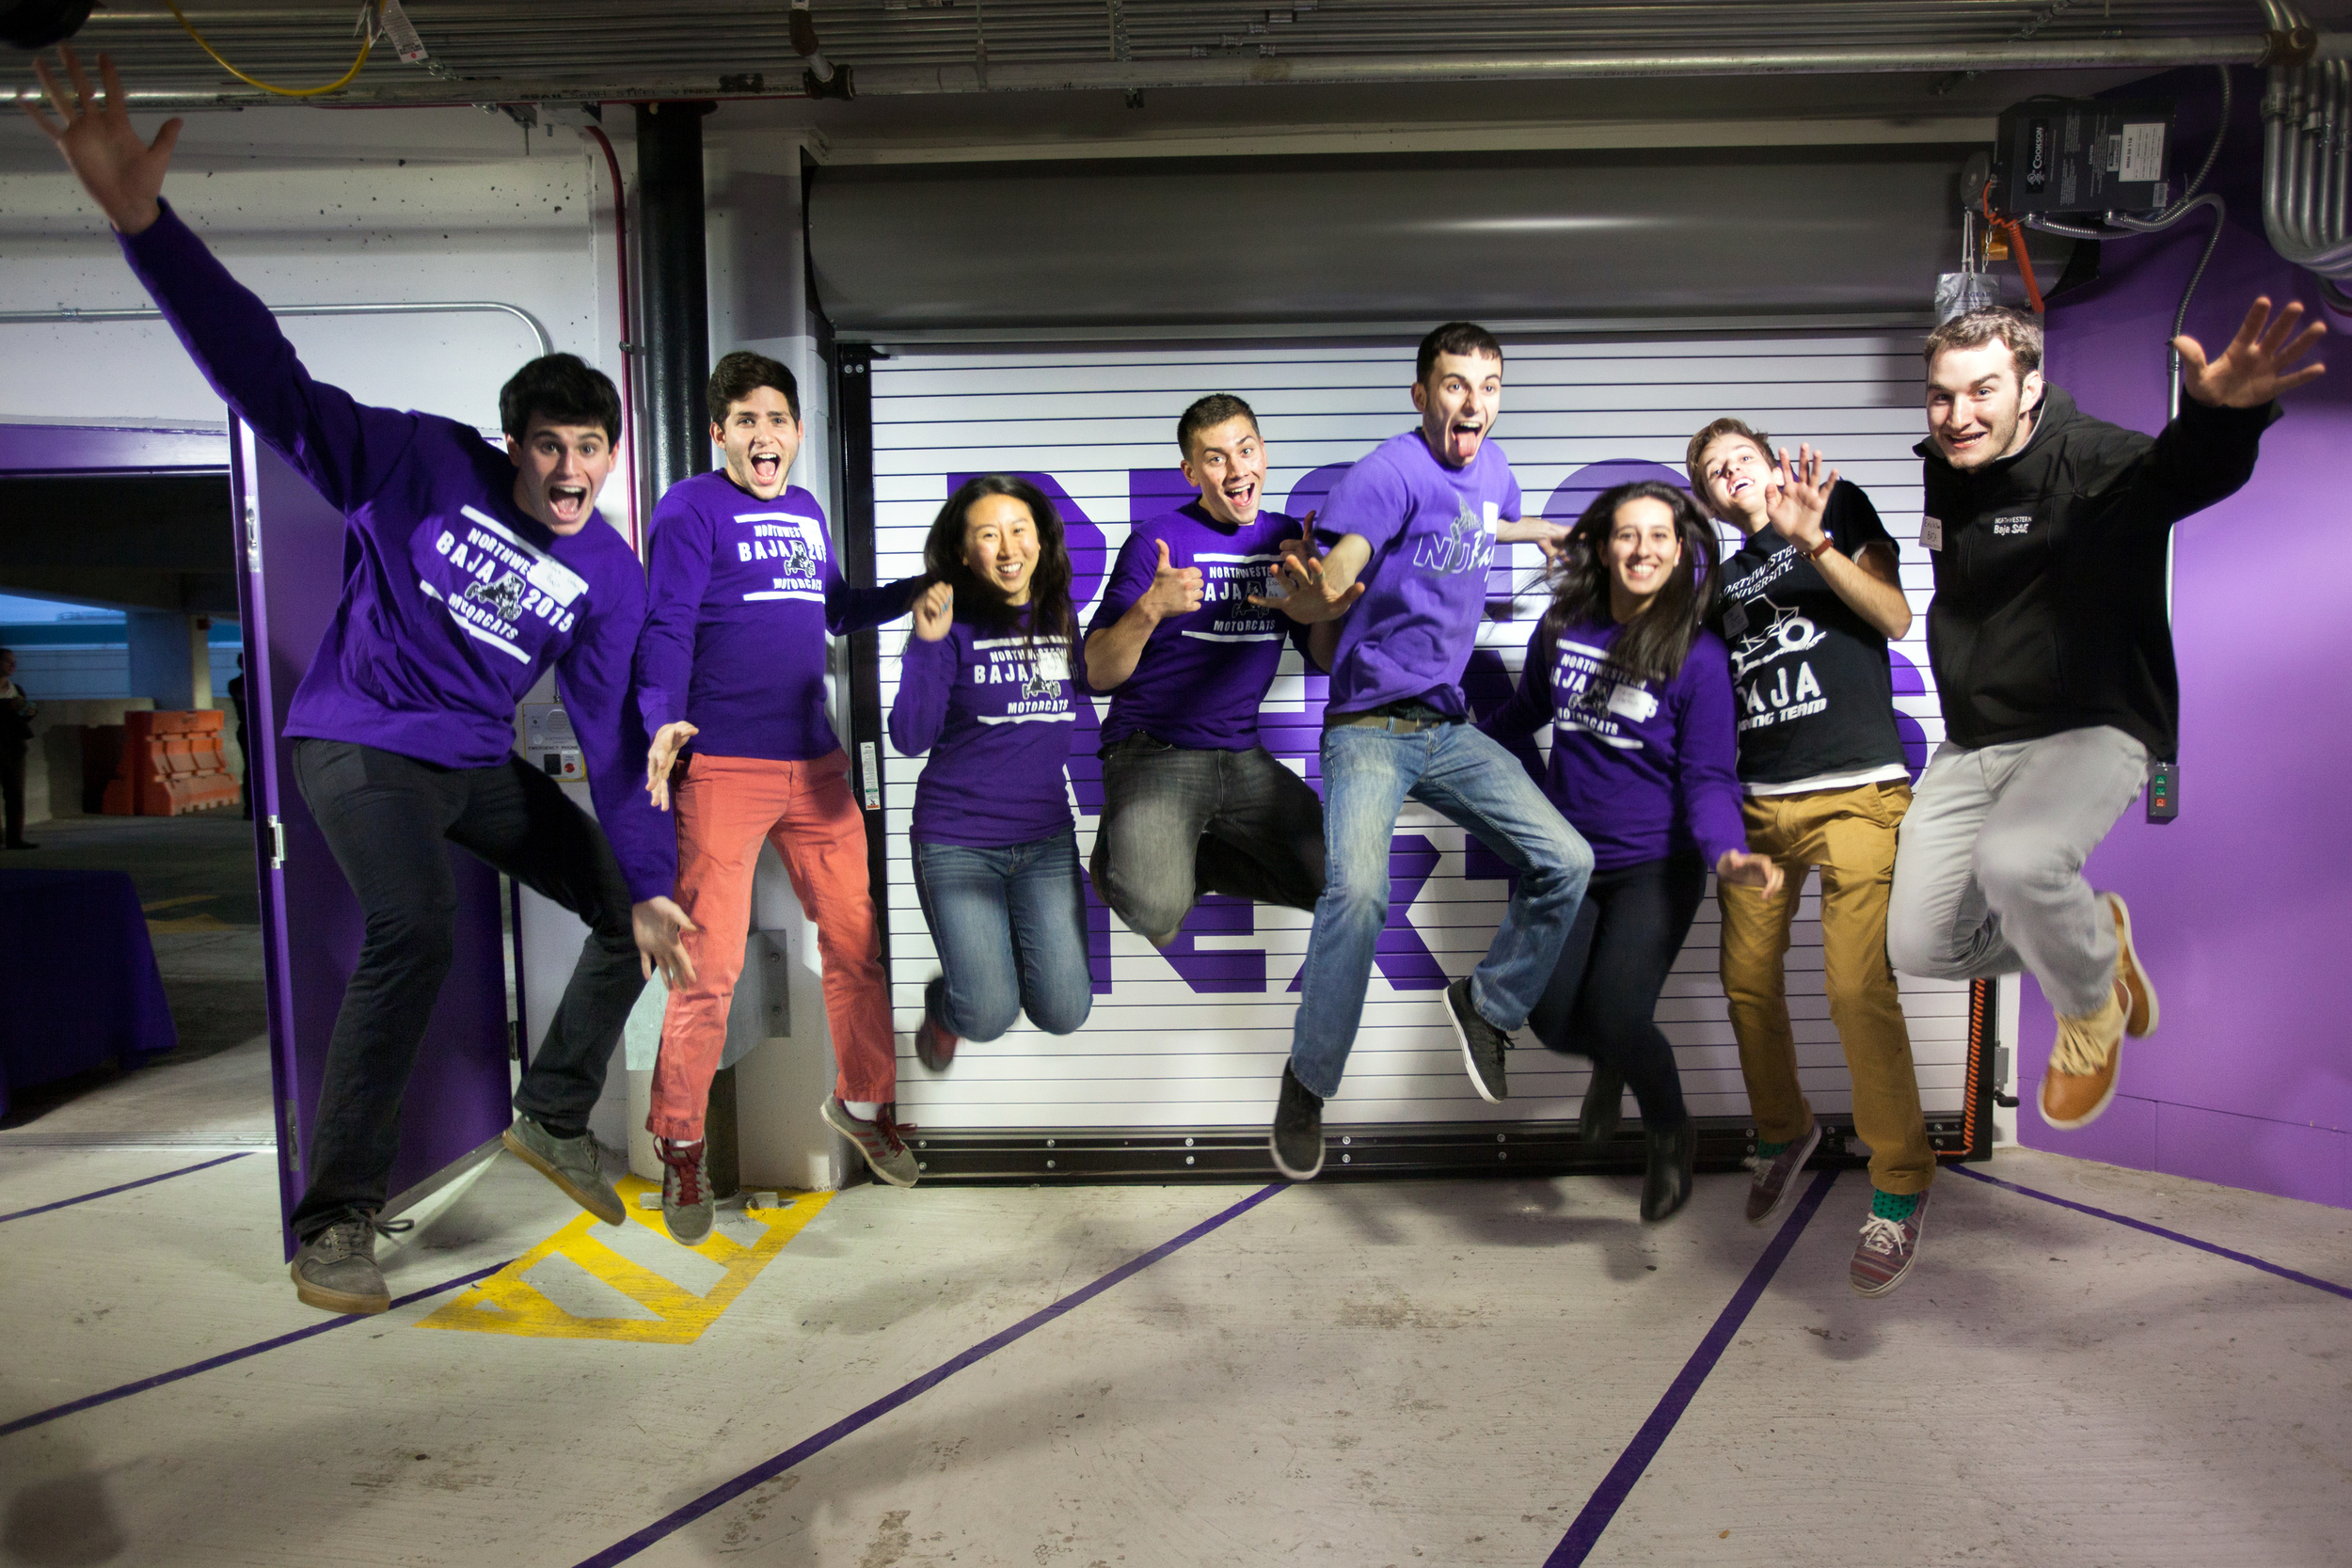 Members of the team jump for joy at the Garage Opening in November 2015